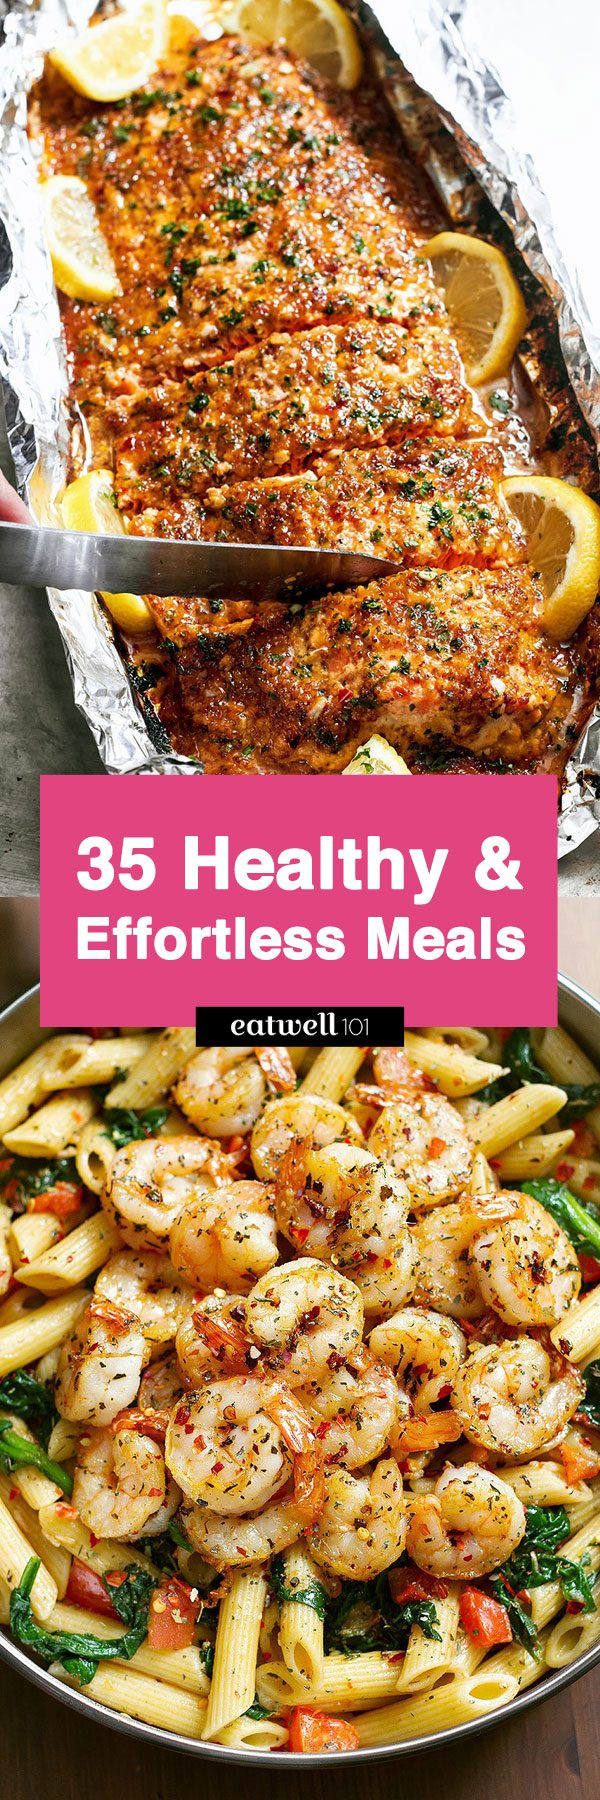 Easy And Healthy Dinner Recipes  43 Low Effort and Healthy Dinner Recipes — Eatwell101